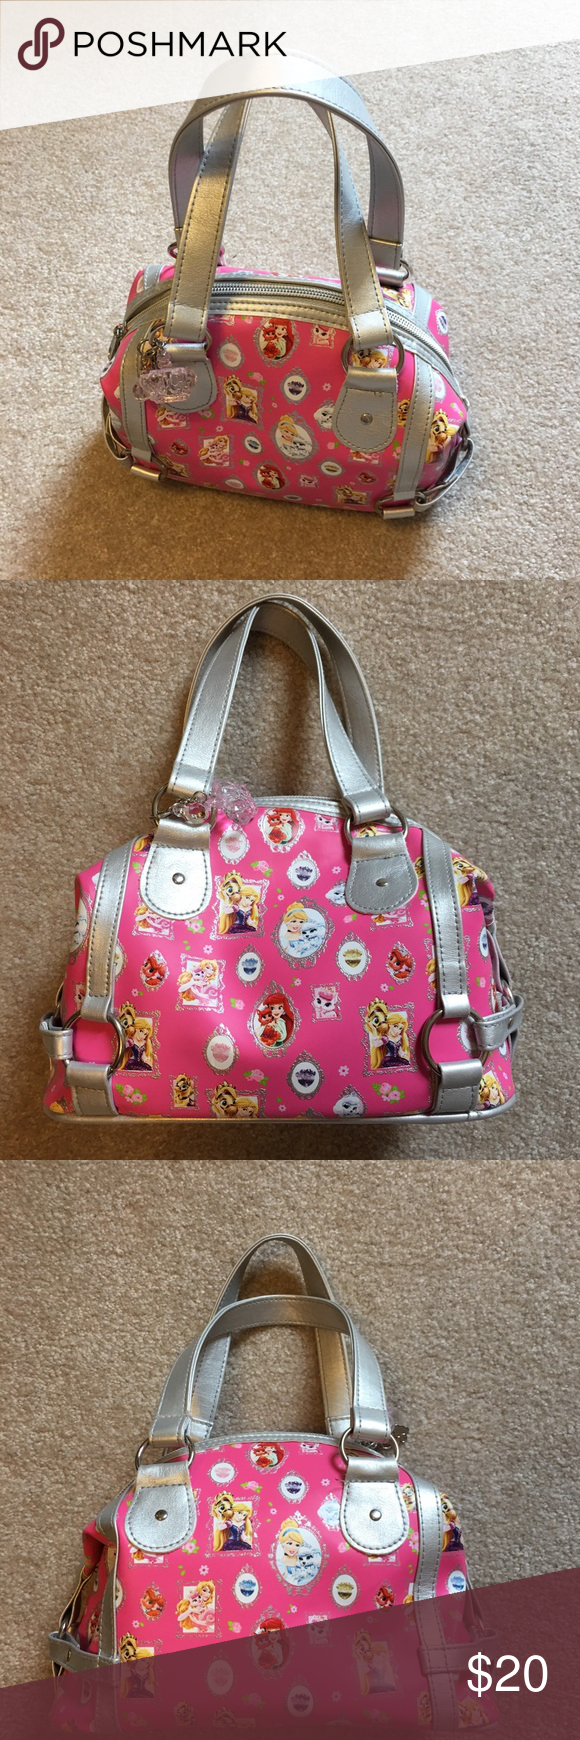 Cutest Disney Palace Pets Purse Ever! Excellent condition! Disney Accessories Ba…